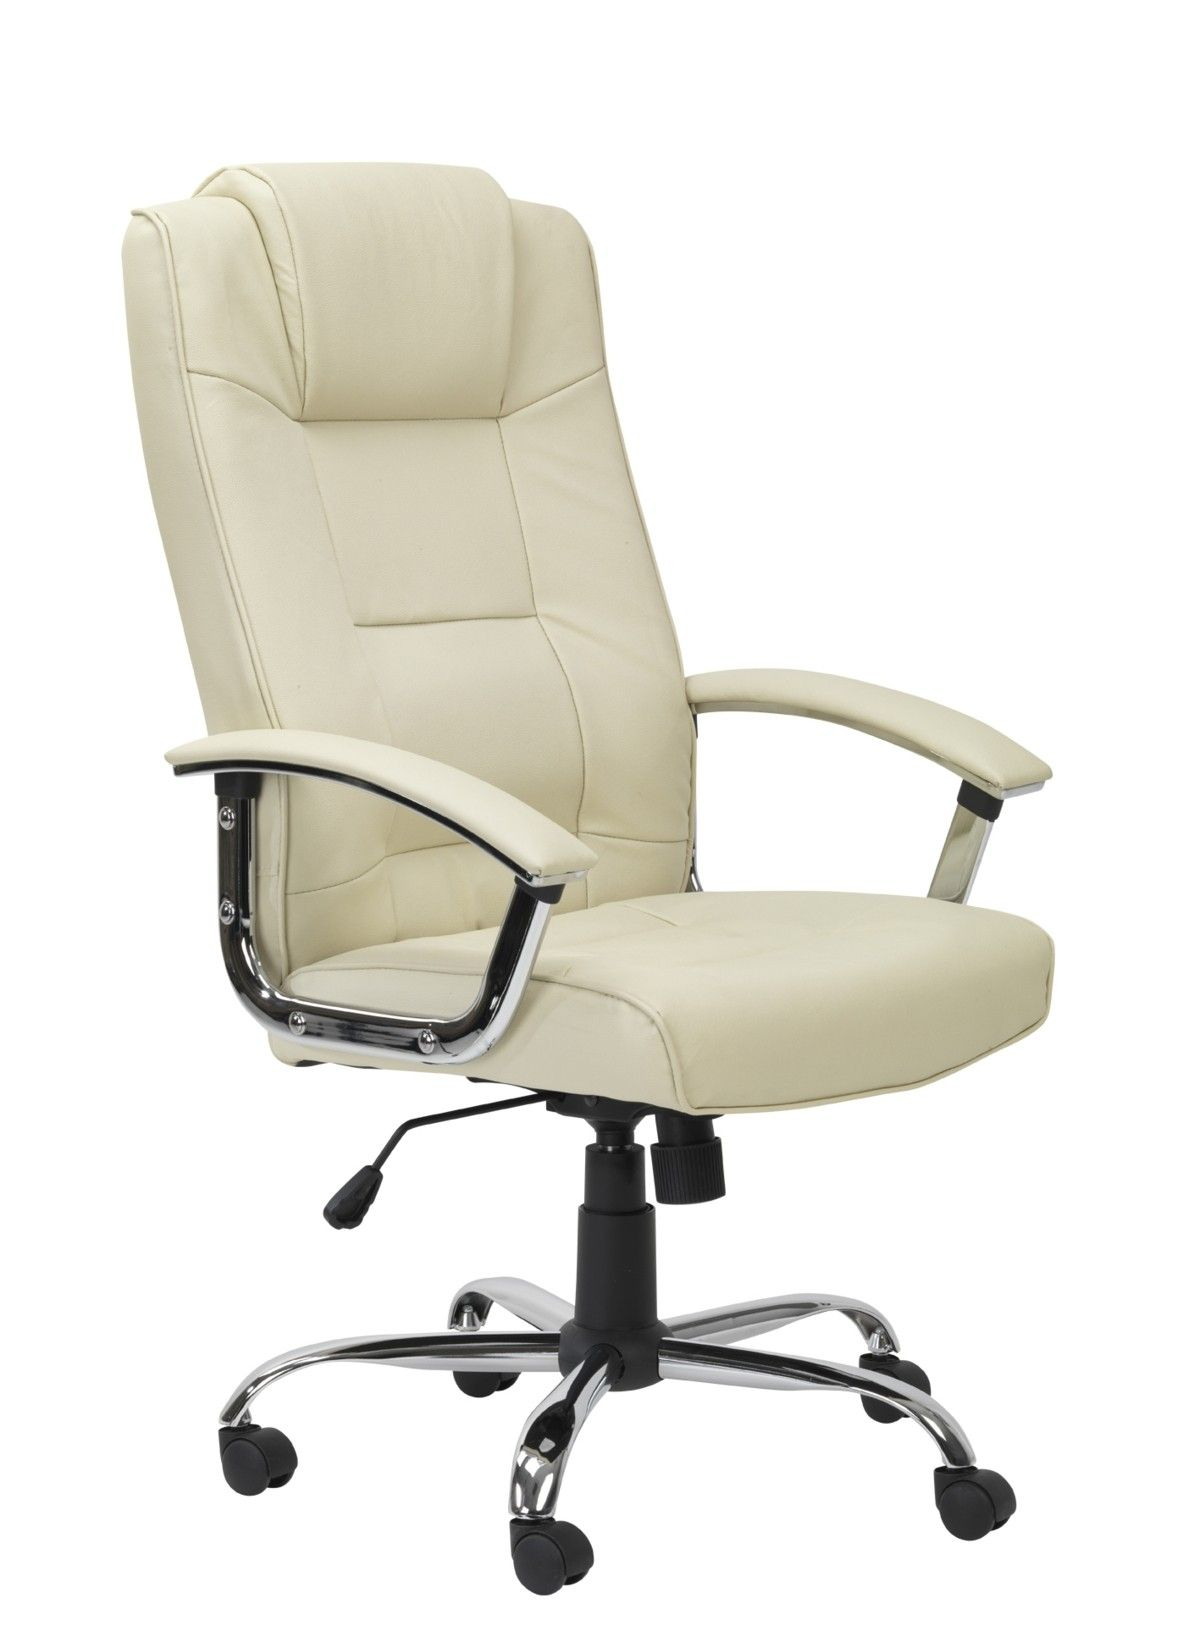 A Leather Faced Executive Chair With A High Backrest And